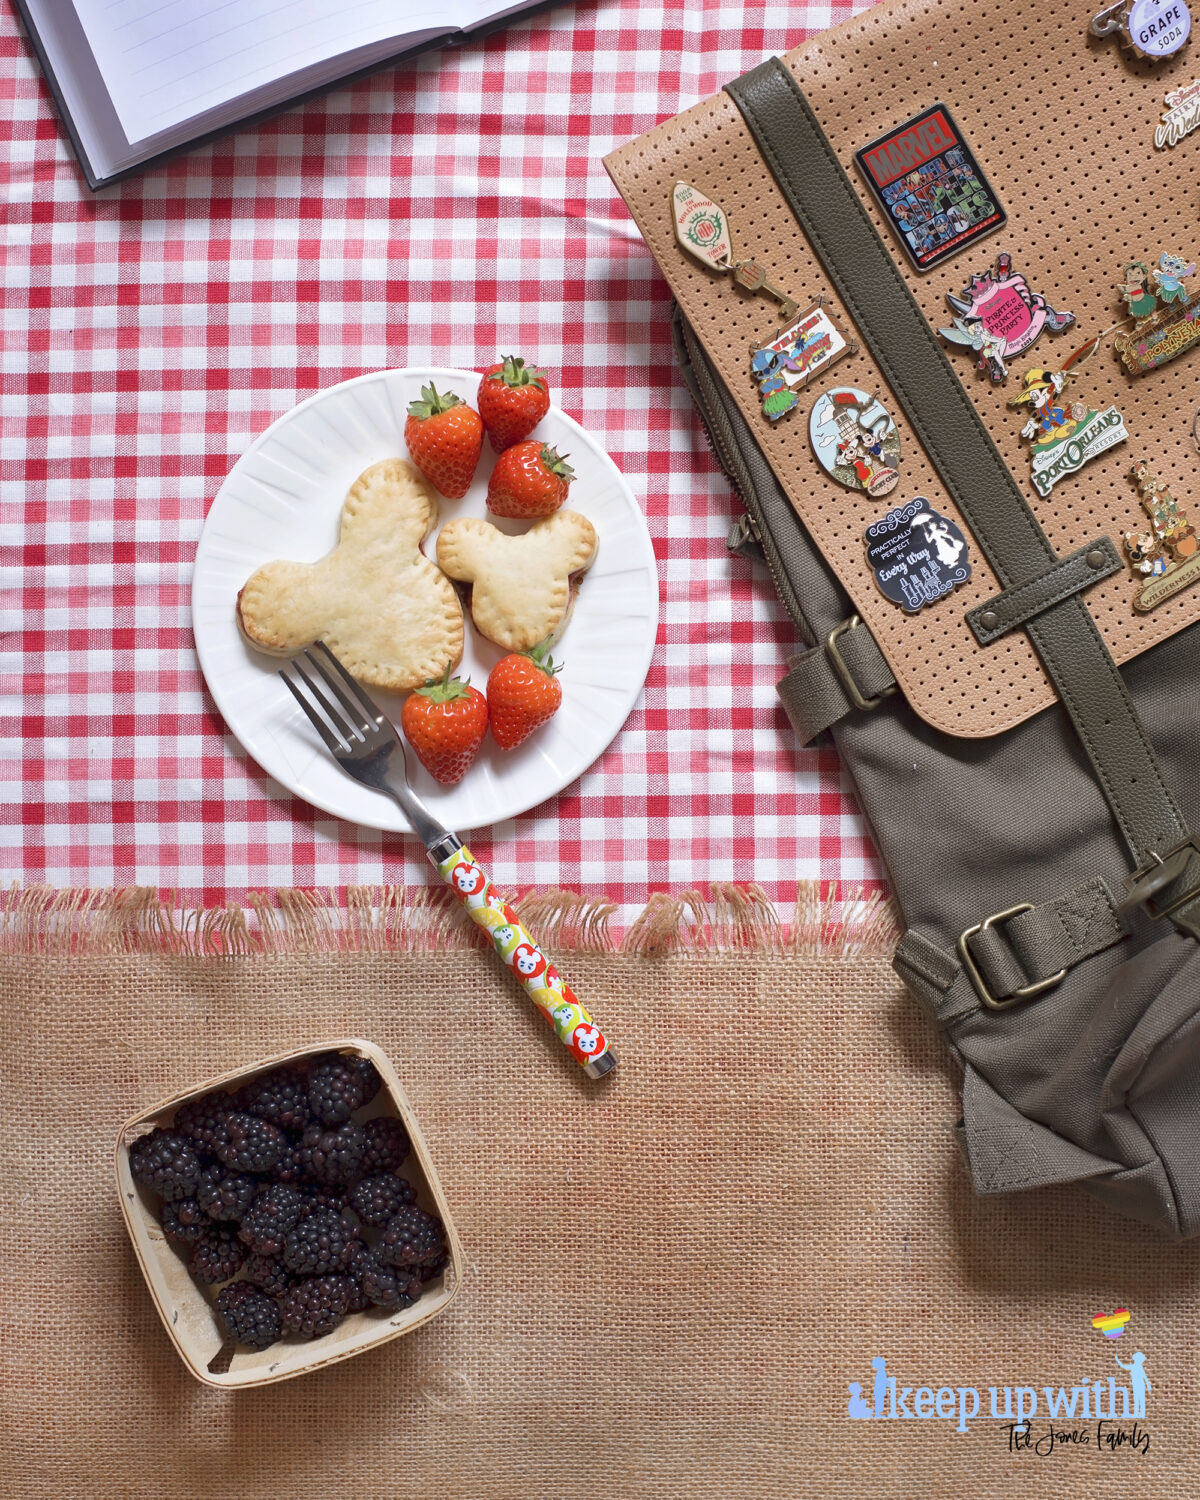 Image shows a flatlay of a red gingham checked tablecloth, overlaid with a jute burlap material with a fringe. On top is a ShopDisneyUK rucksack with many Disney pins from Disney's fairytale weddings, Port Orleans, Castaway Cay, Disneyland Hotel, Cinderellas Table and many more. Next to the bag is a white Vera Wang sideplate with two Mickey Mouse shaped shortcrust pies on. One is larger than the other. There is a ShopDisney fork balancing on the plate with a summer citrus and apples pattern on it.  There is a wooden punnet of blackberries below the plate.The image is watermarked by Keep up with the Jones Family.